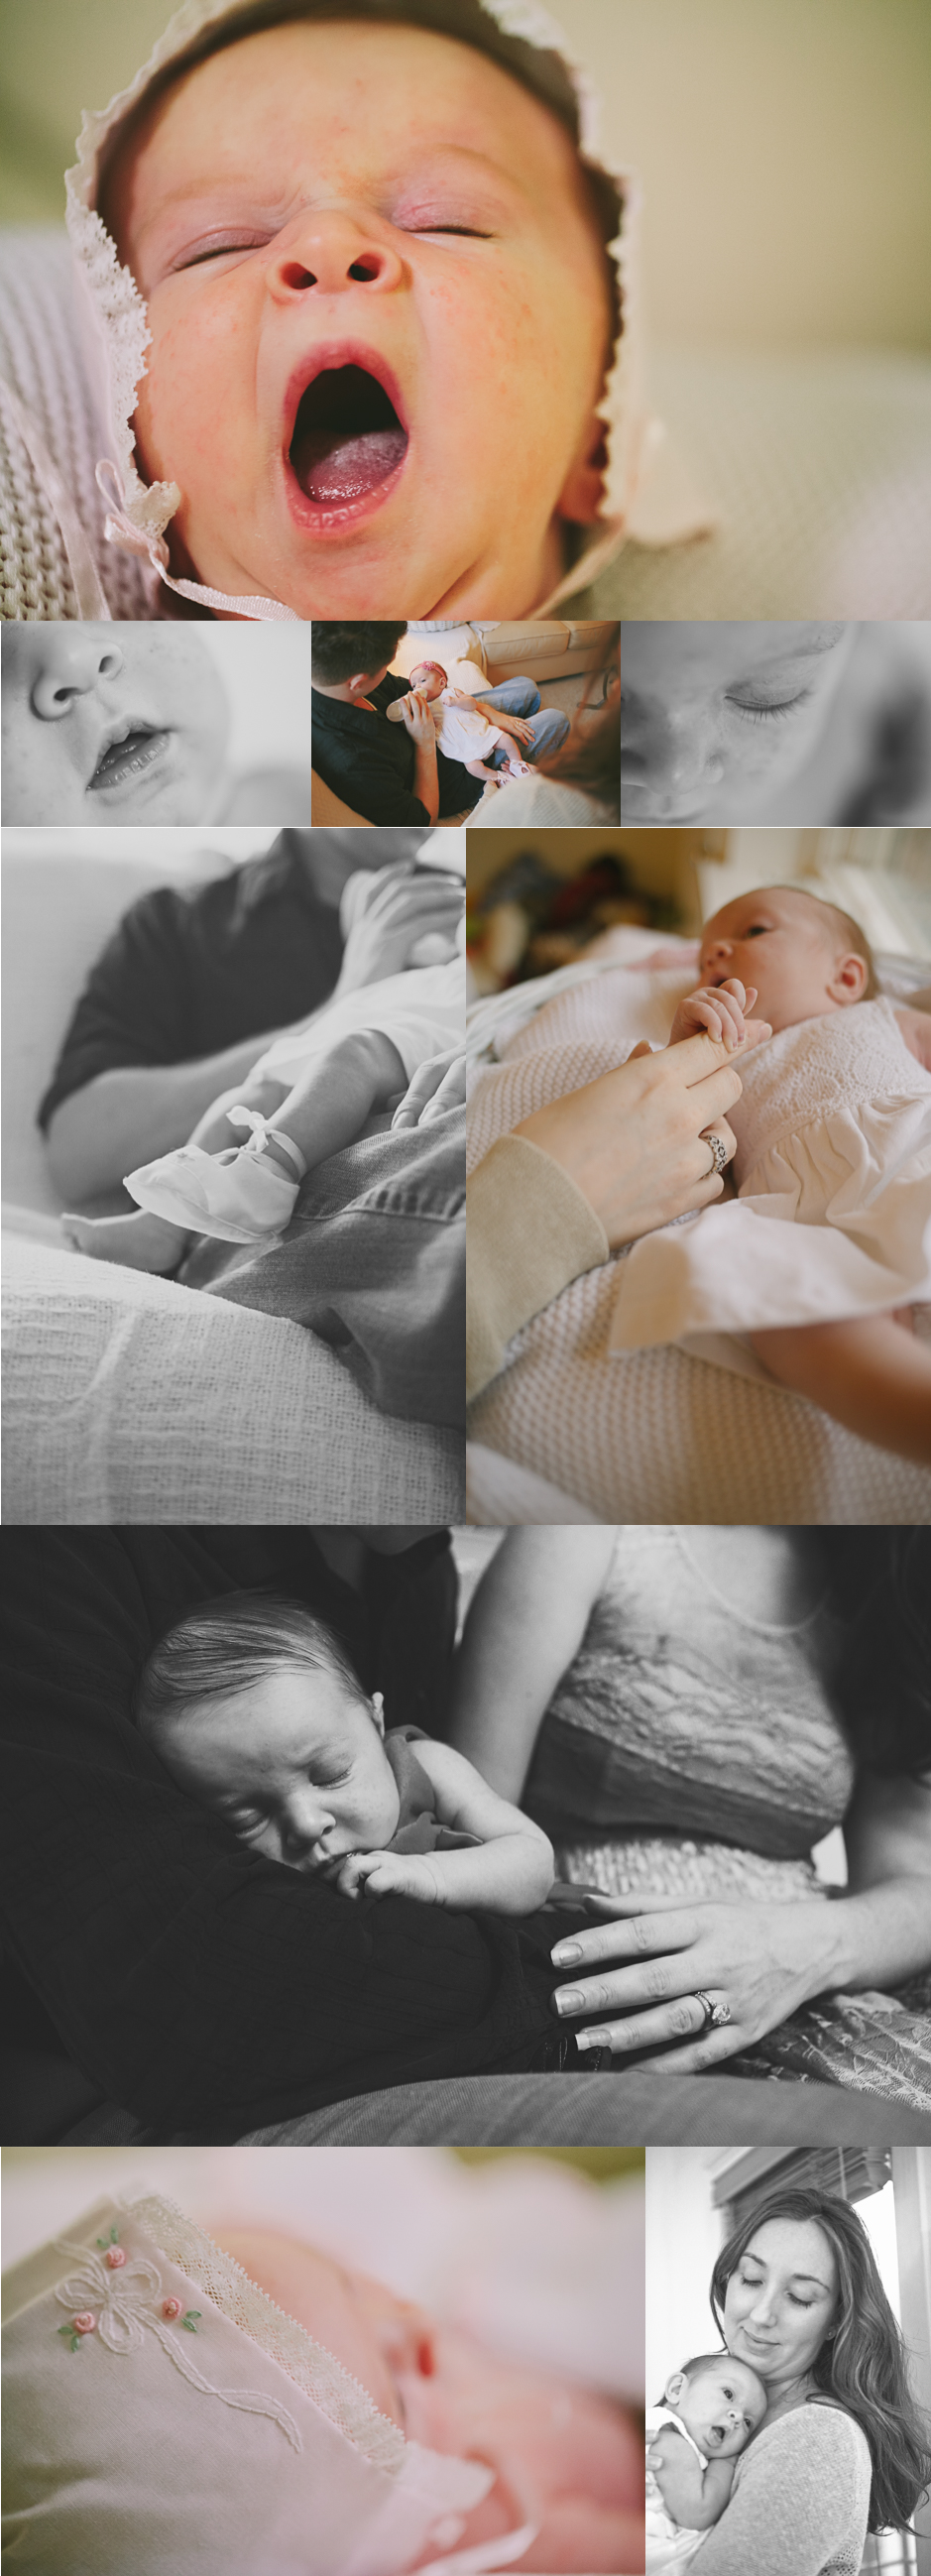 FL20141123 Meadow_Newborn_BlogCollages-1